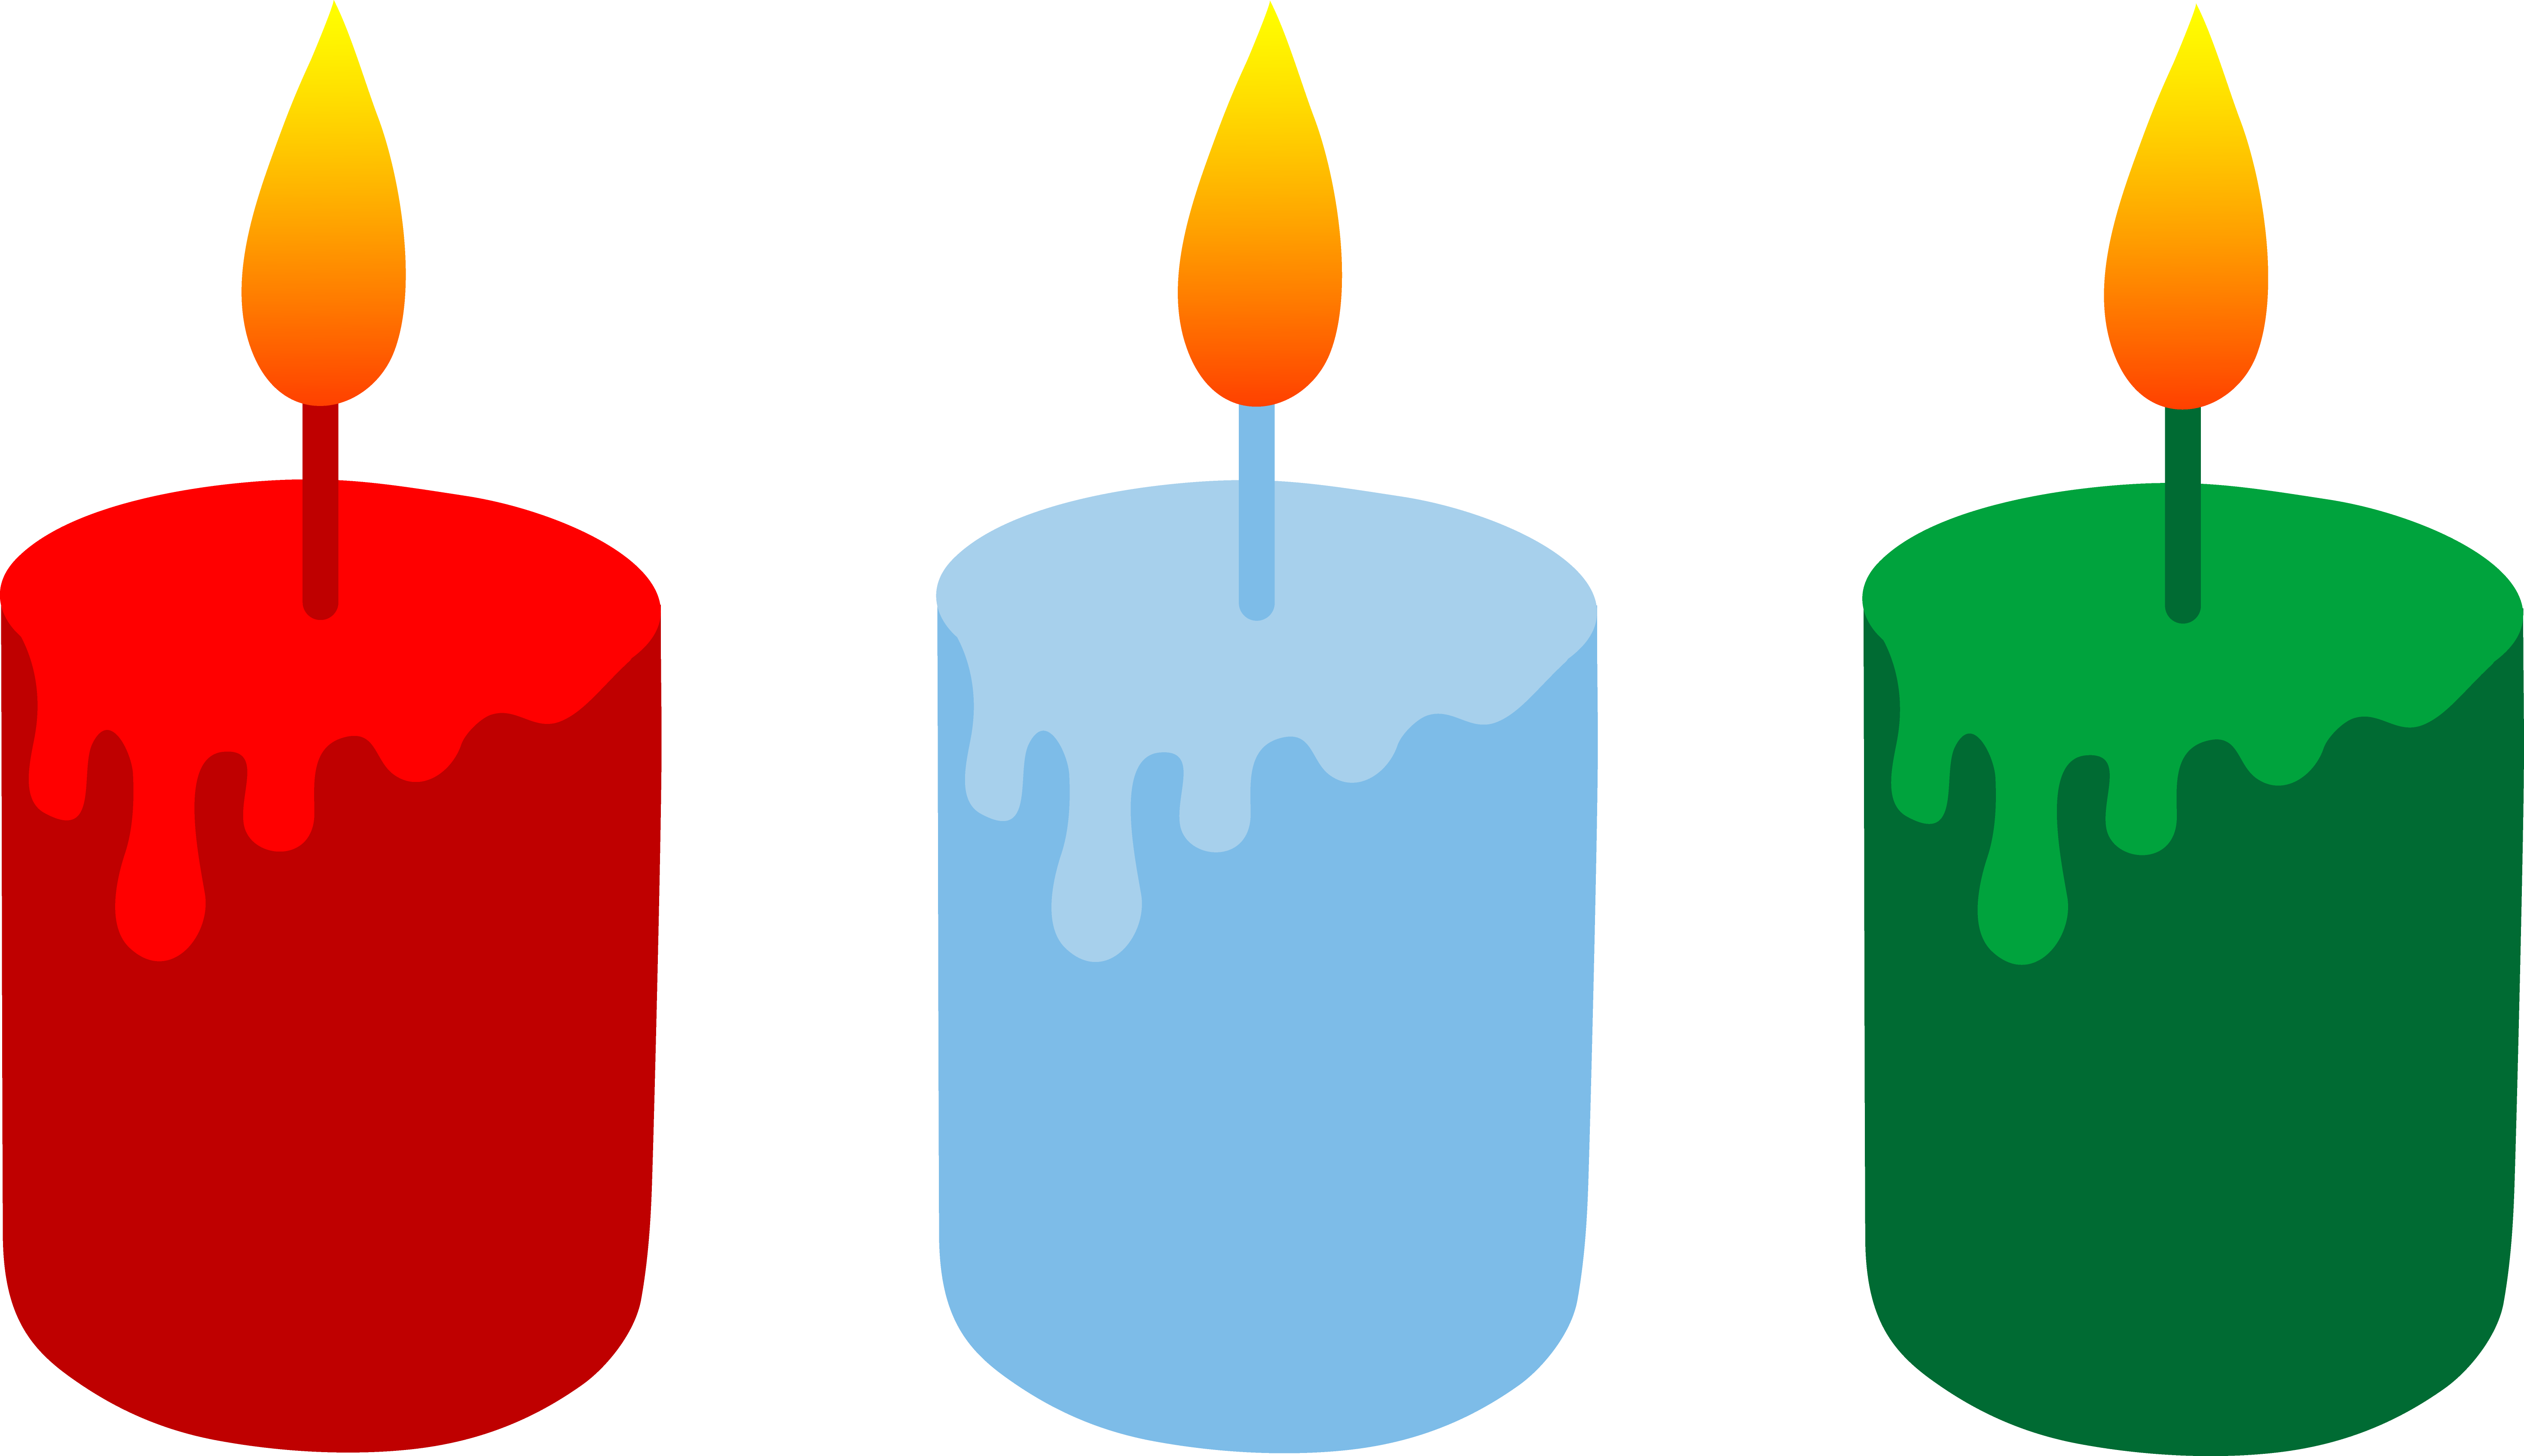 Peace clipart 4th sunday advent. Candle free